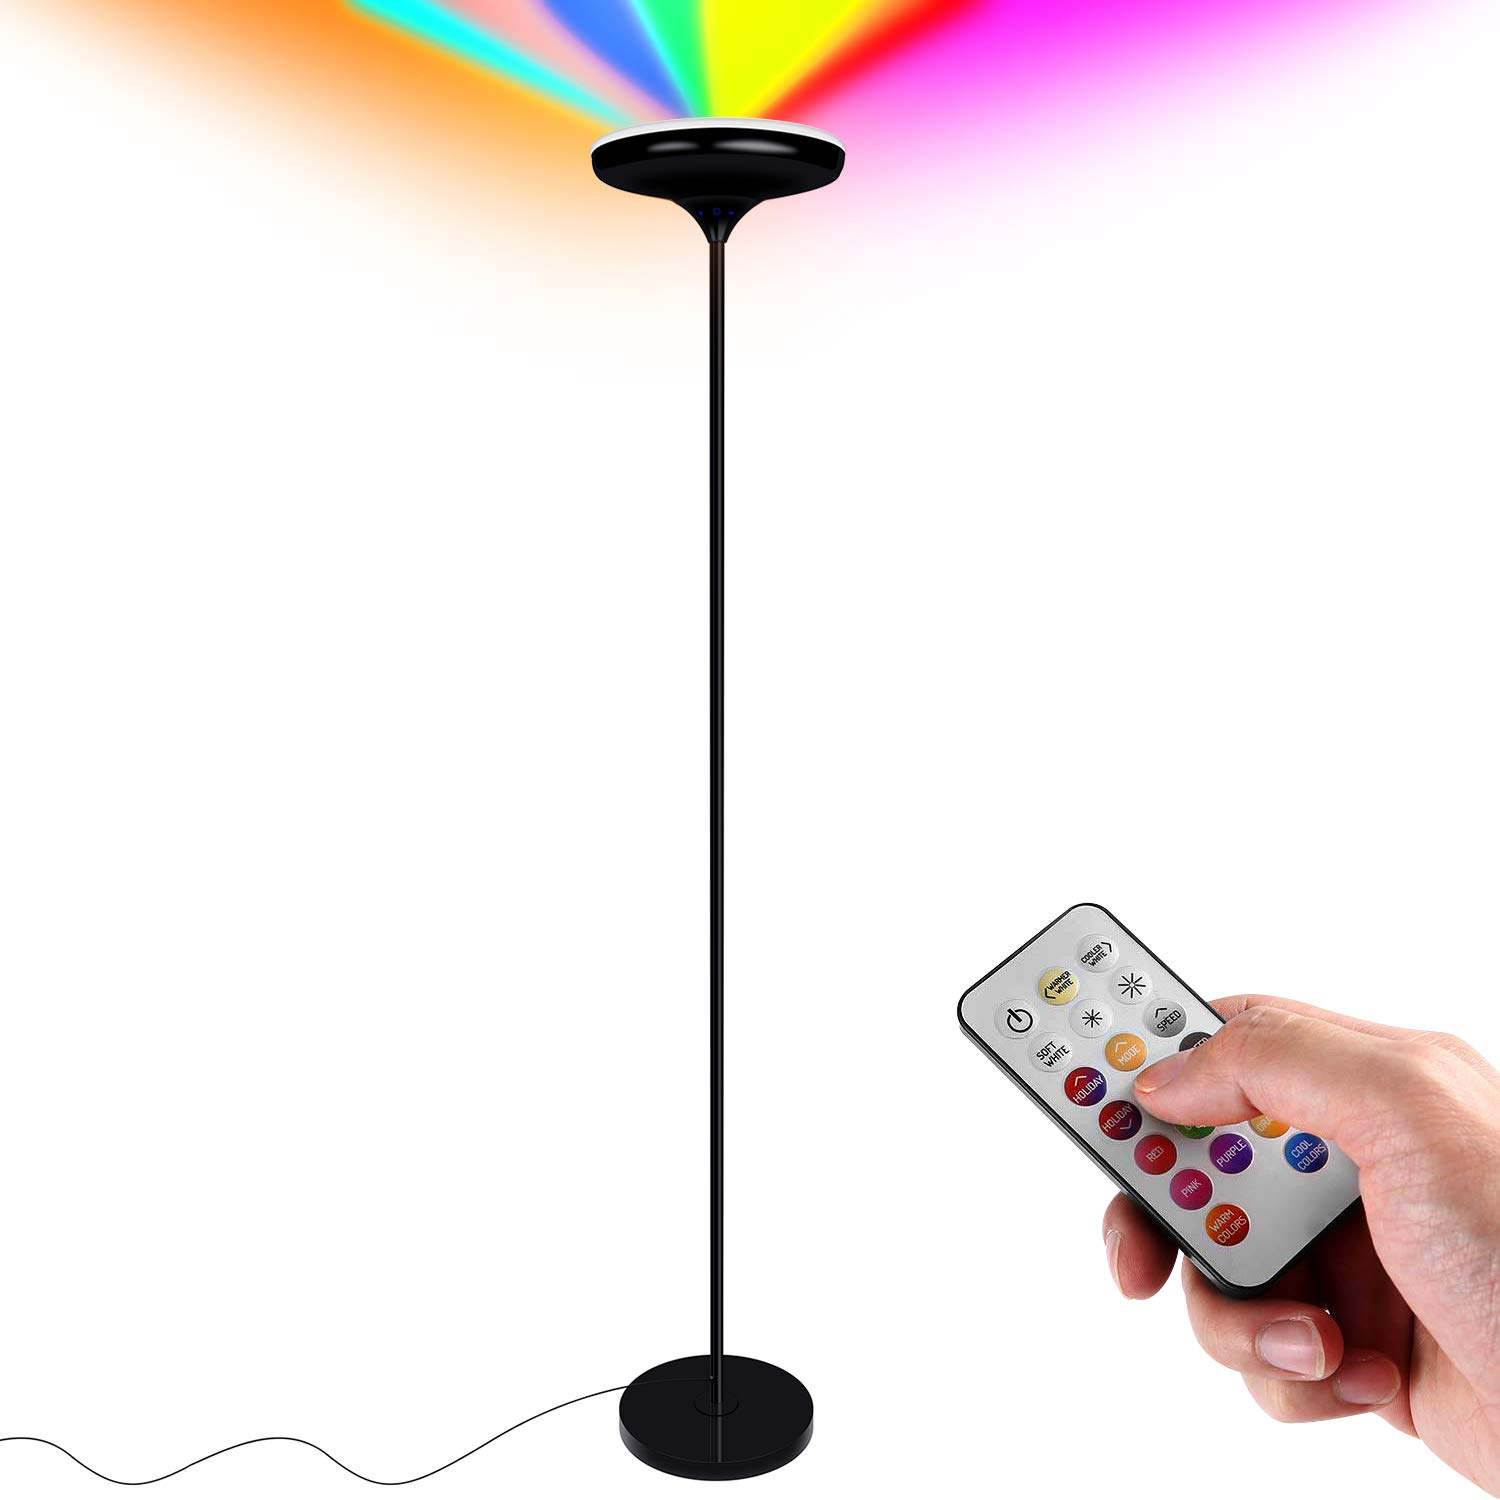 FaithSail Color Changing LED Torchiere Floor Lamp, Remote Control 24W (200W Equivalent), Dimmable and Adjustable, Reading Uplight Standing Floor Light for Bedrooms, Living Room and Office